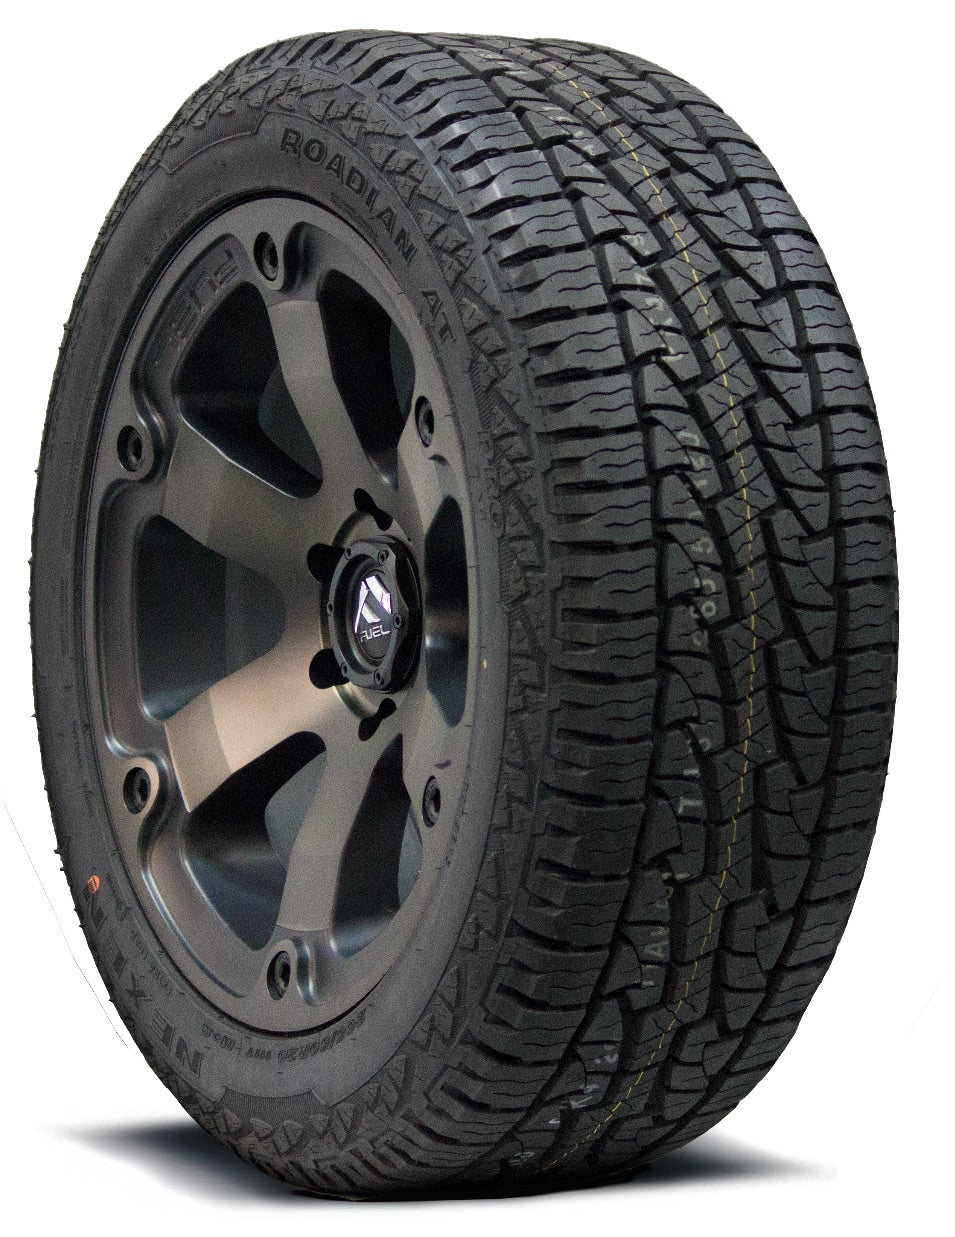 265/60R18 NEXEN ROADIAN AT PRO RA8 | BLACK LTR 110T